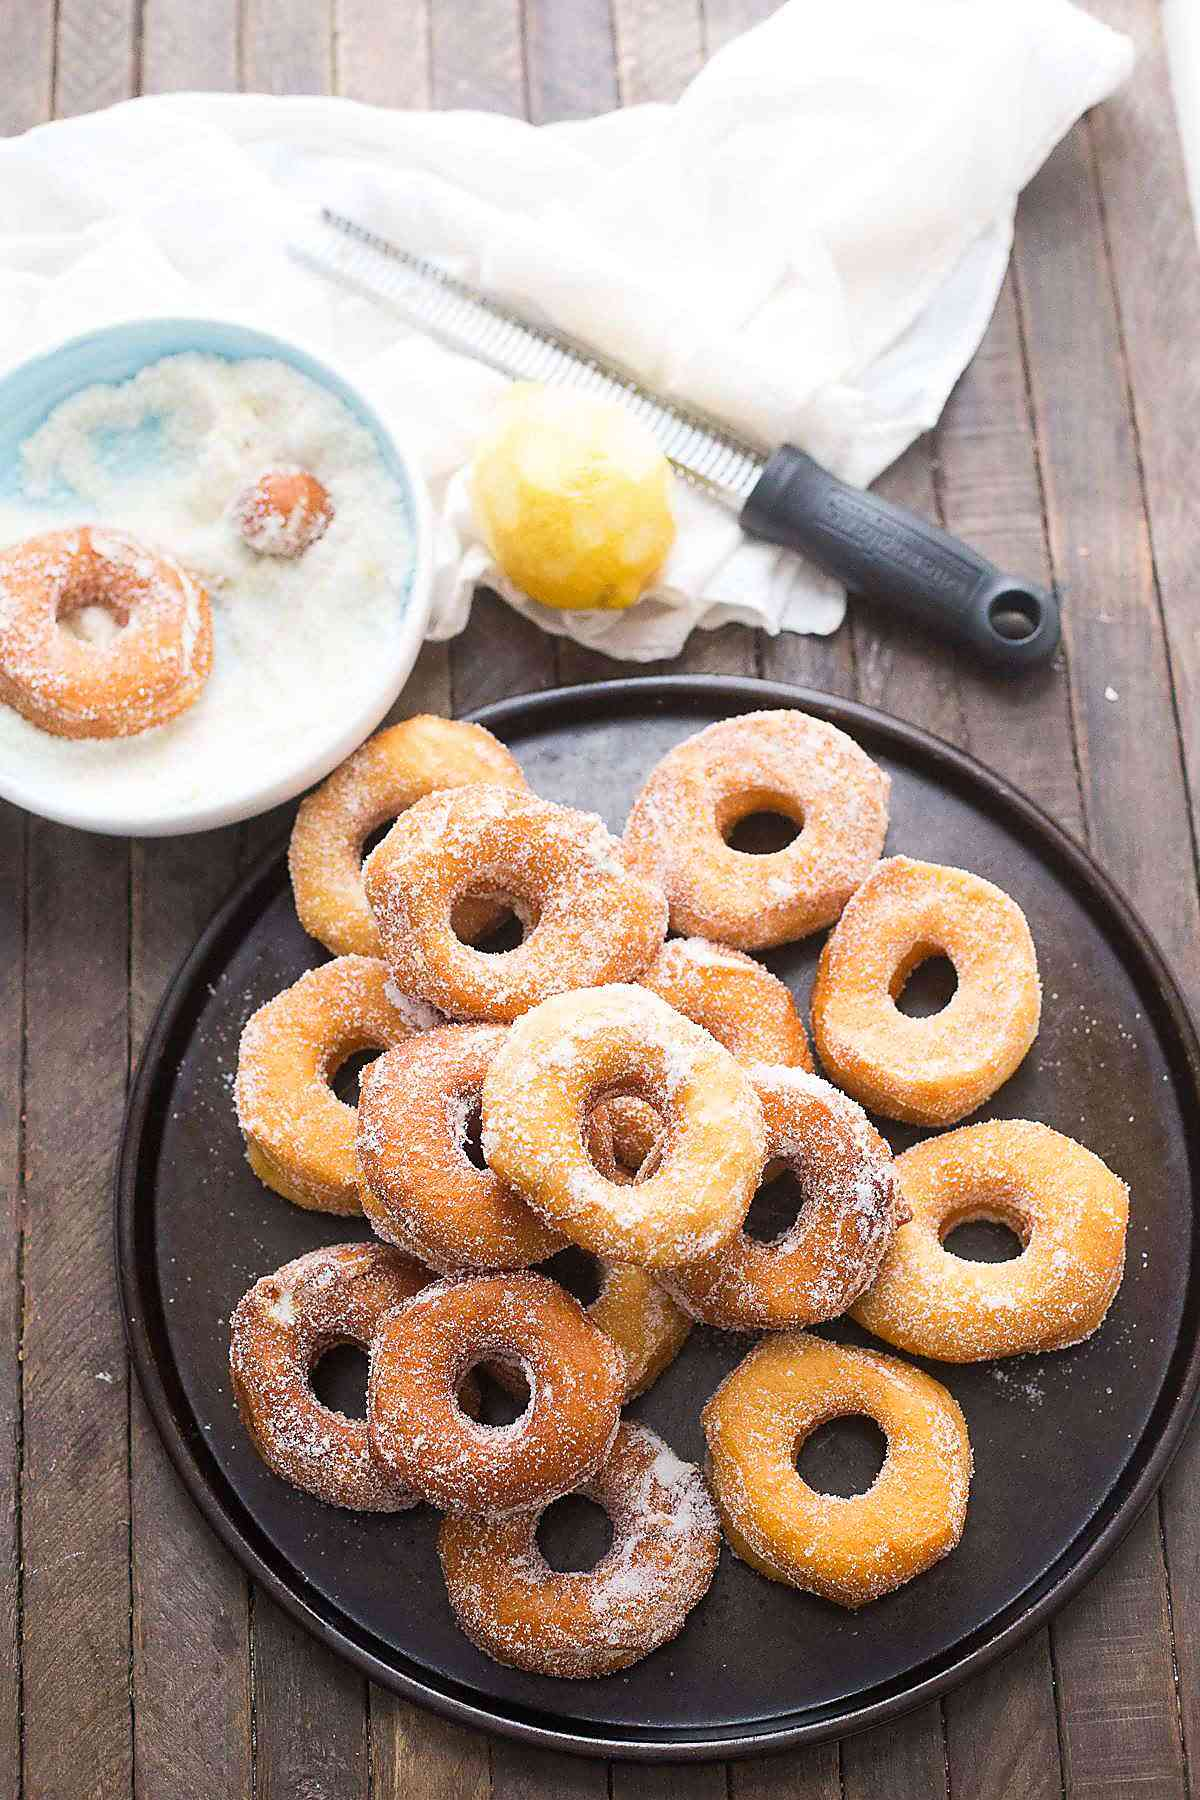 Biscuit donuts are lightly fried then coated in a simple lemon sugar mixture!